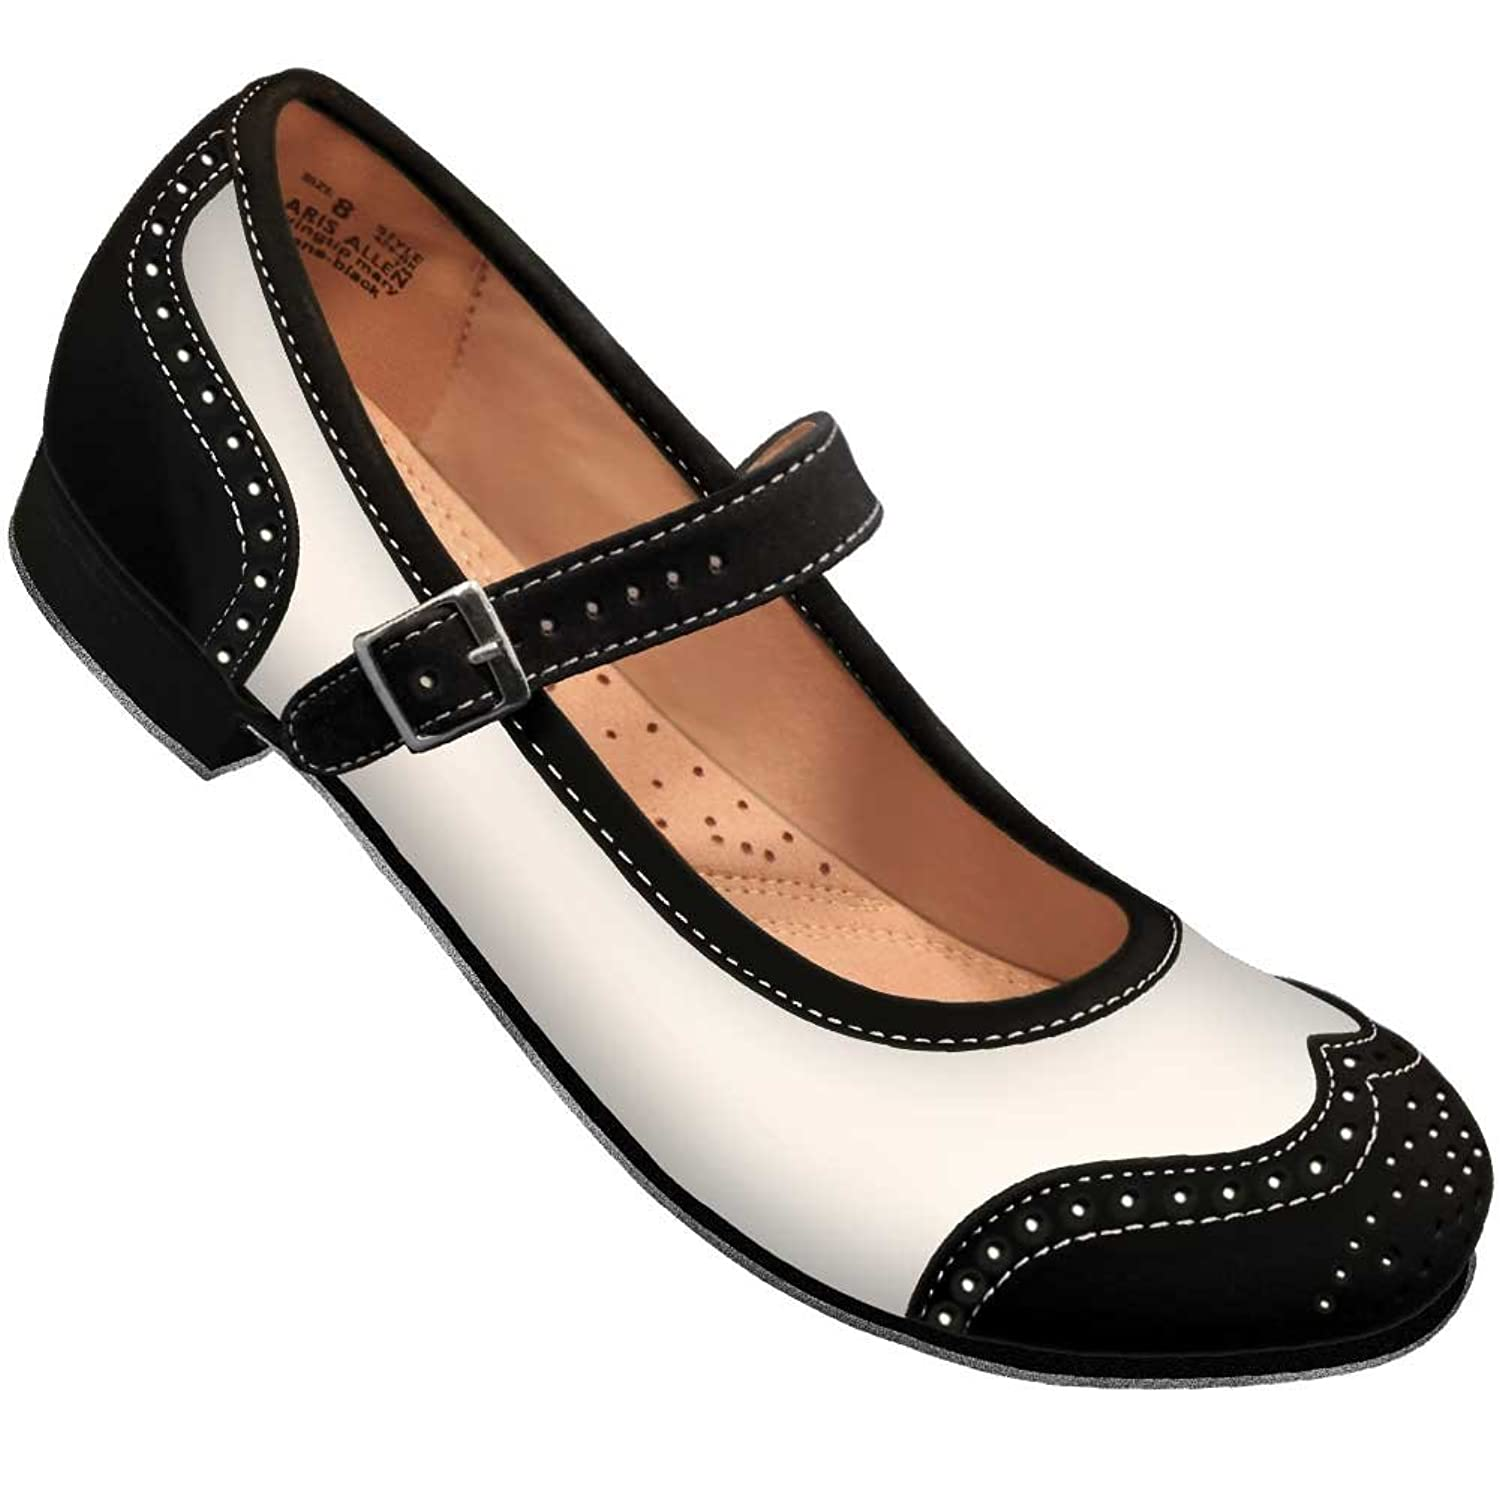 Men's Vintage Style Hats Aris Allen Black and Ivory Snub Toe Mary Jane Wingtips $48.95 AT vintagedancer.com